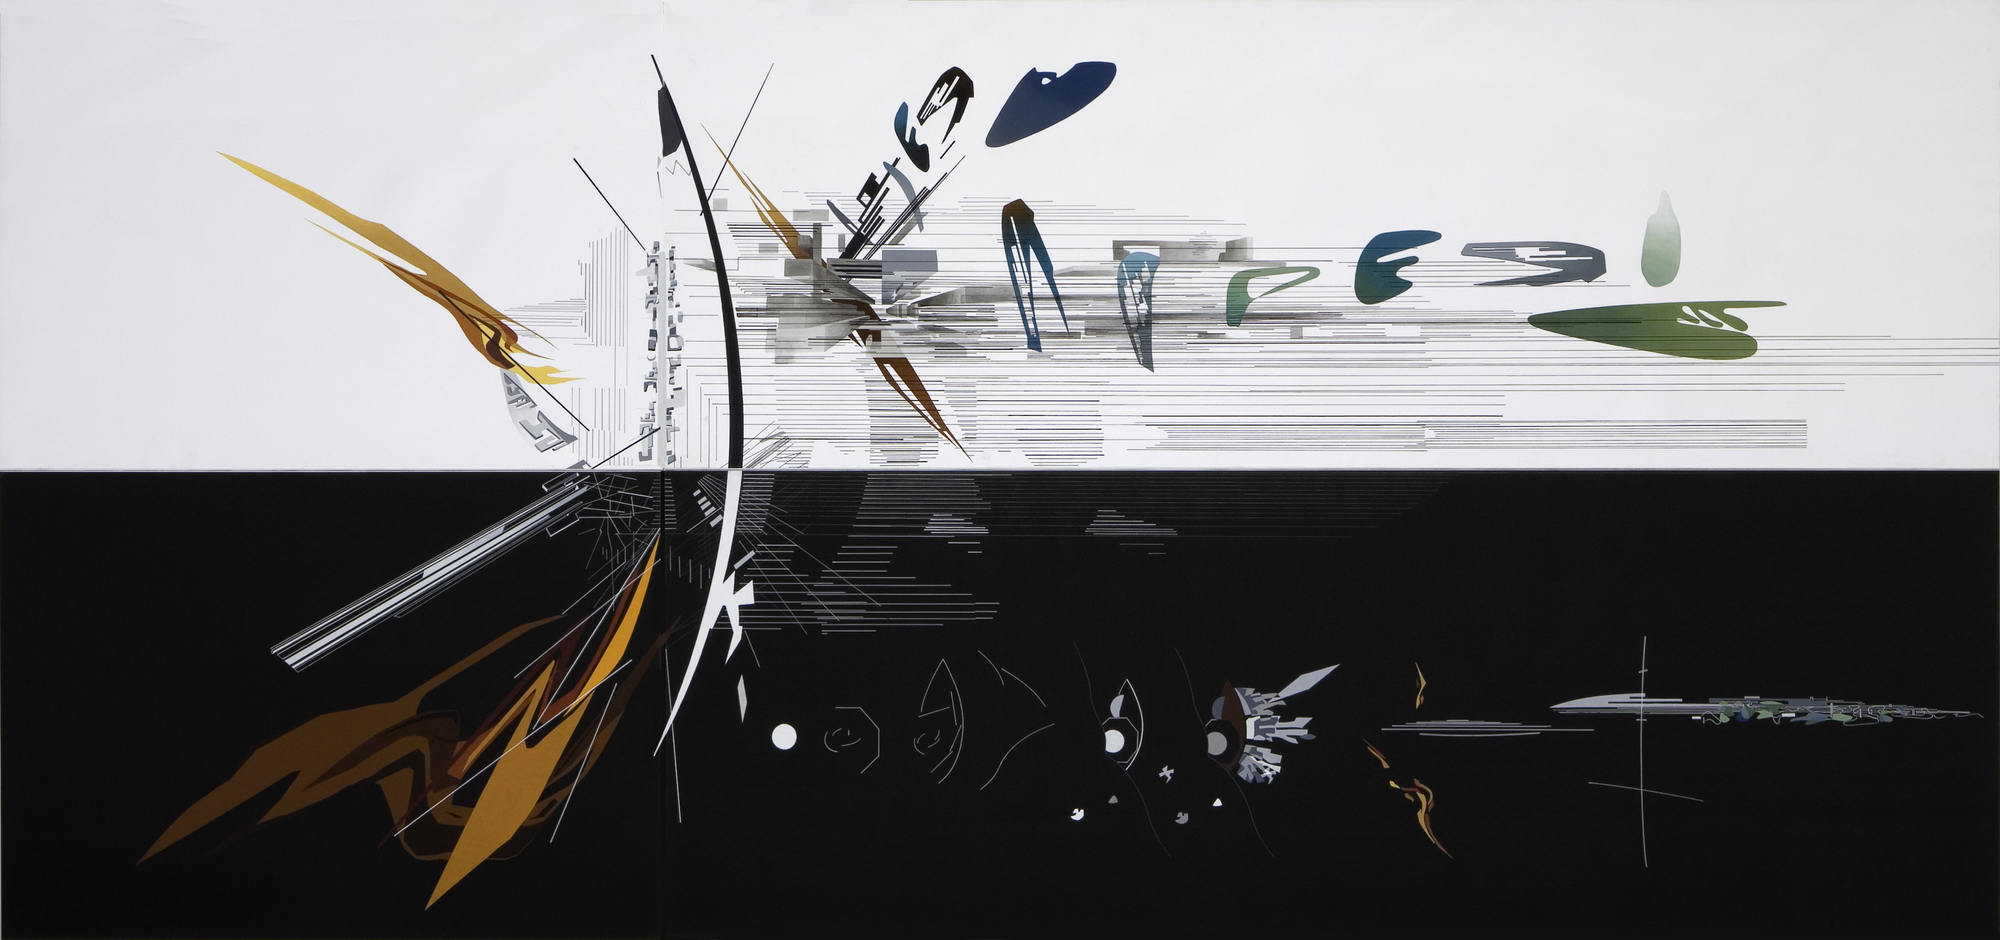 The Creative Process of Zaha Hadid, As Revealed Through Her Paintings